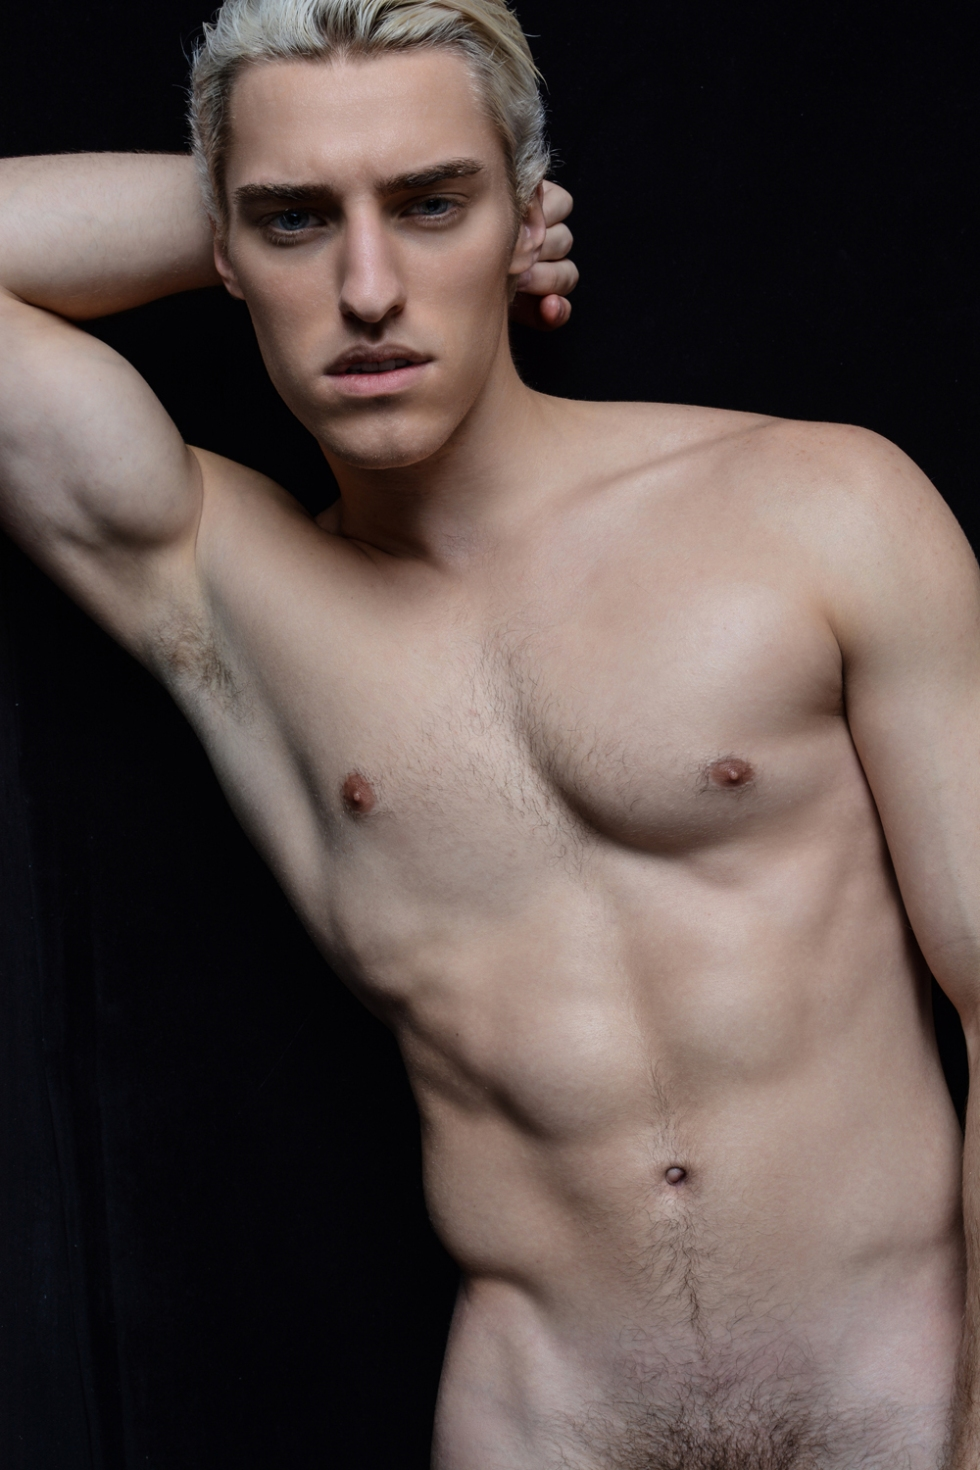 Introducing the new muse by lensman Calvin Brockington, he's Ryan Pearce a lovely charming young boy with 19yo. Exposing also at ComeToIsland. Feeling motivated this Monday!